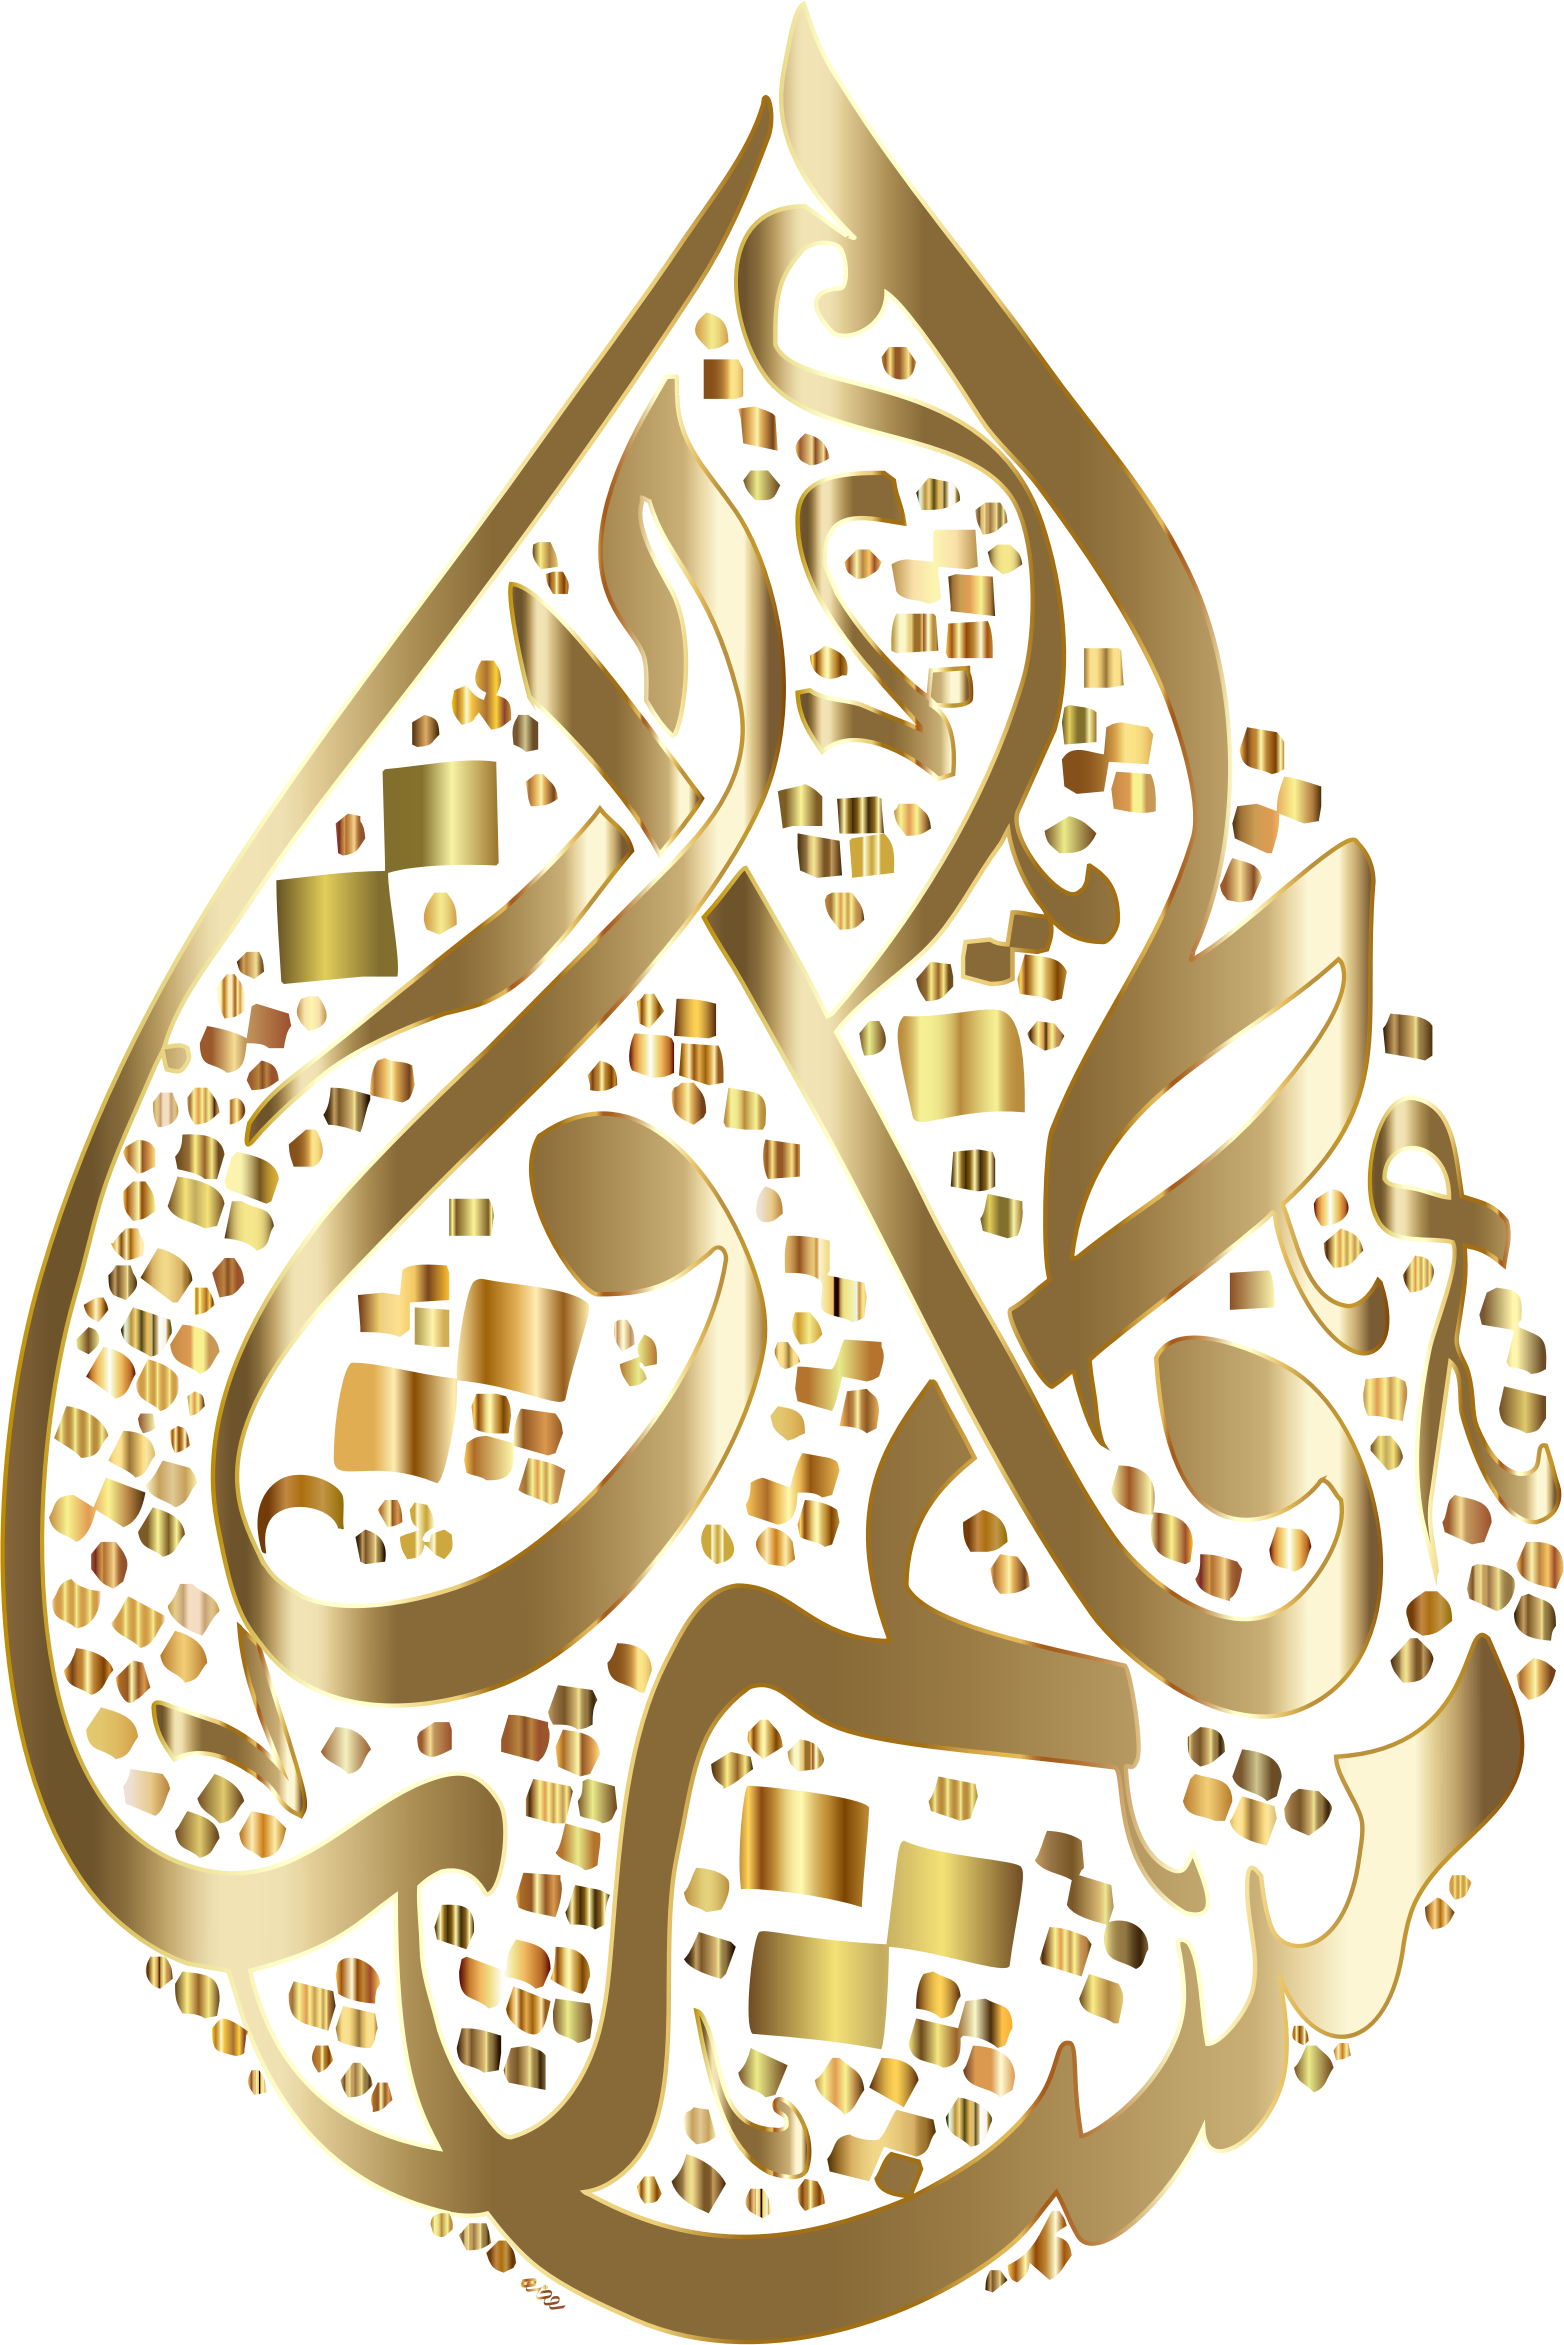 Fatimah Al Zahra Calligraphy Gold No BG by GDJ